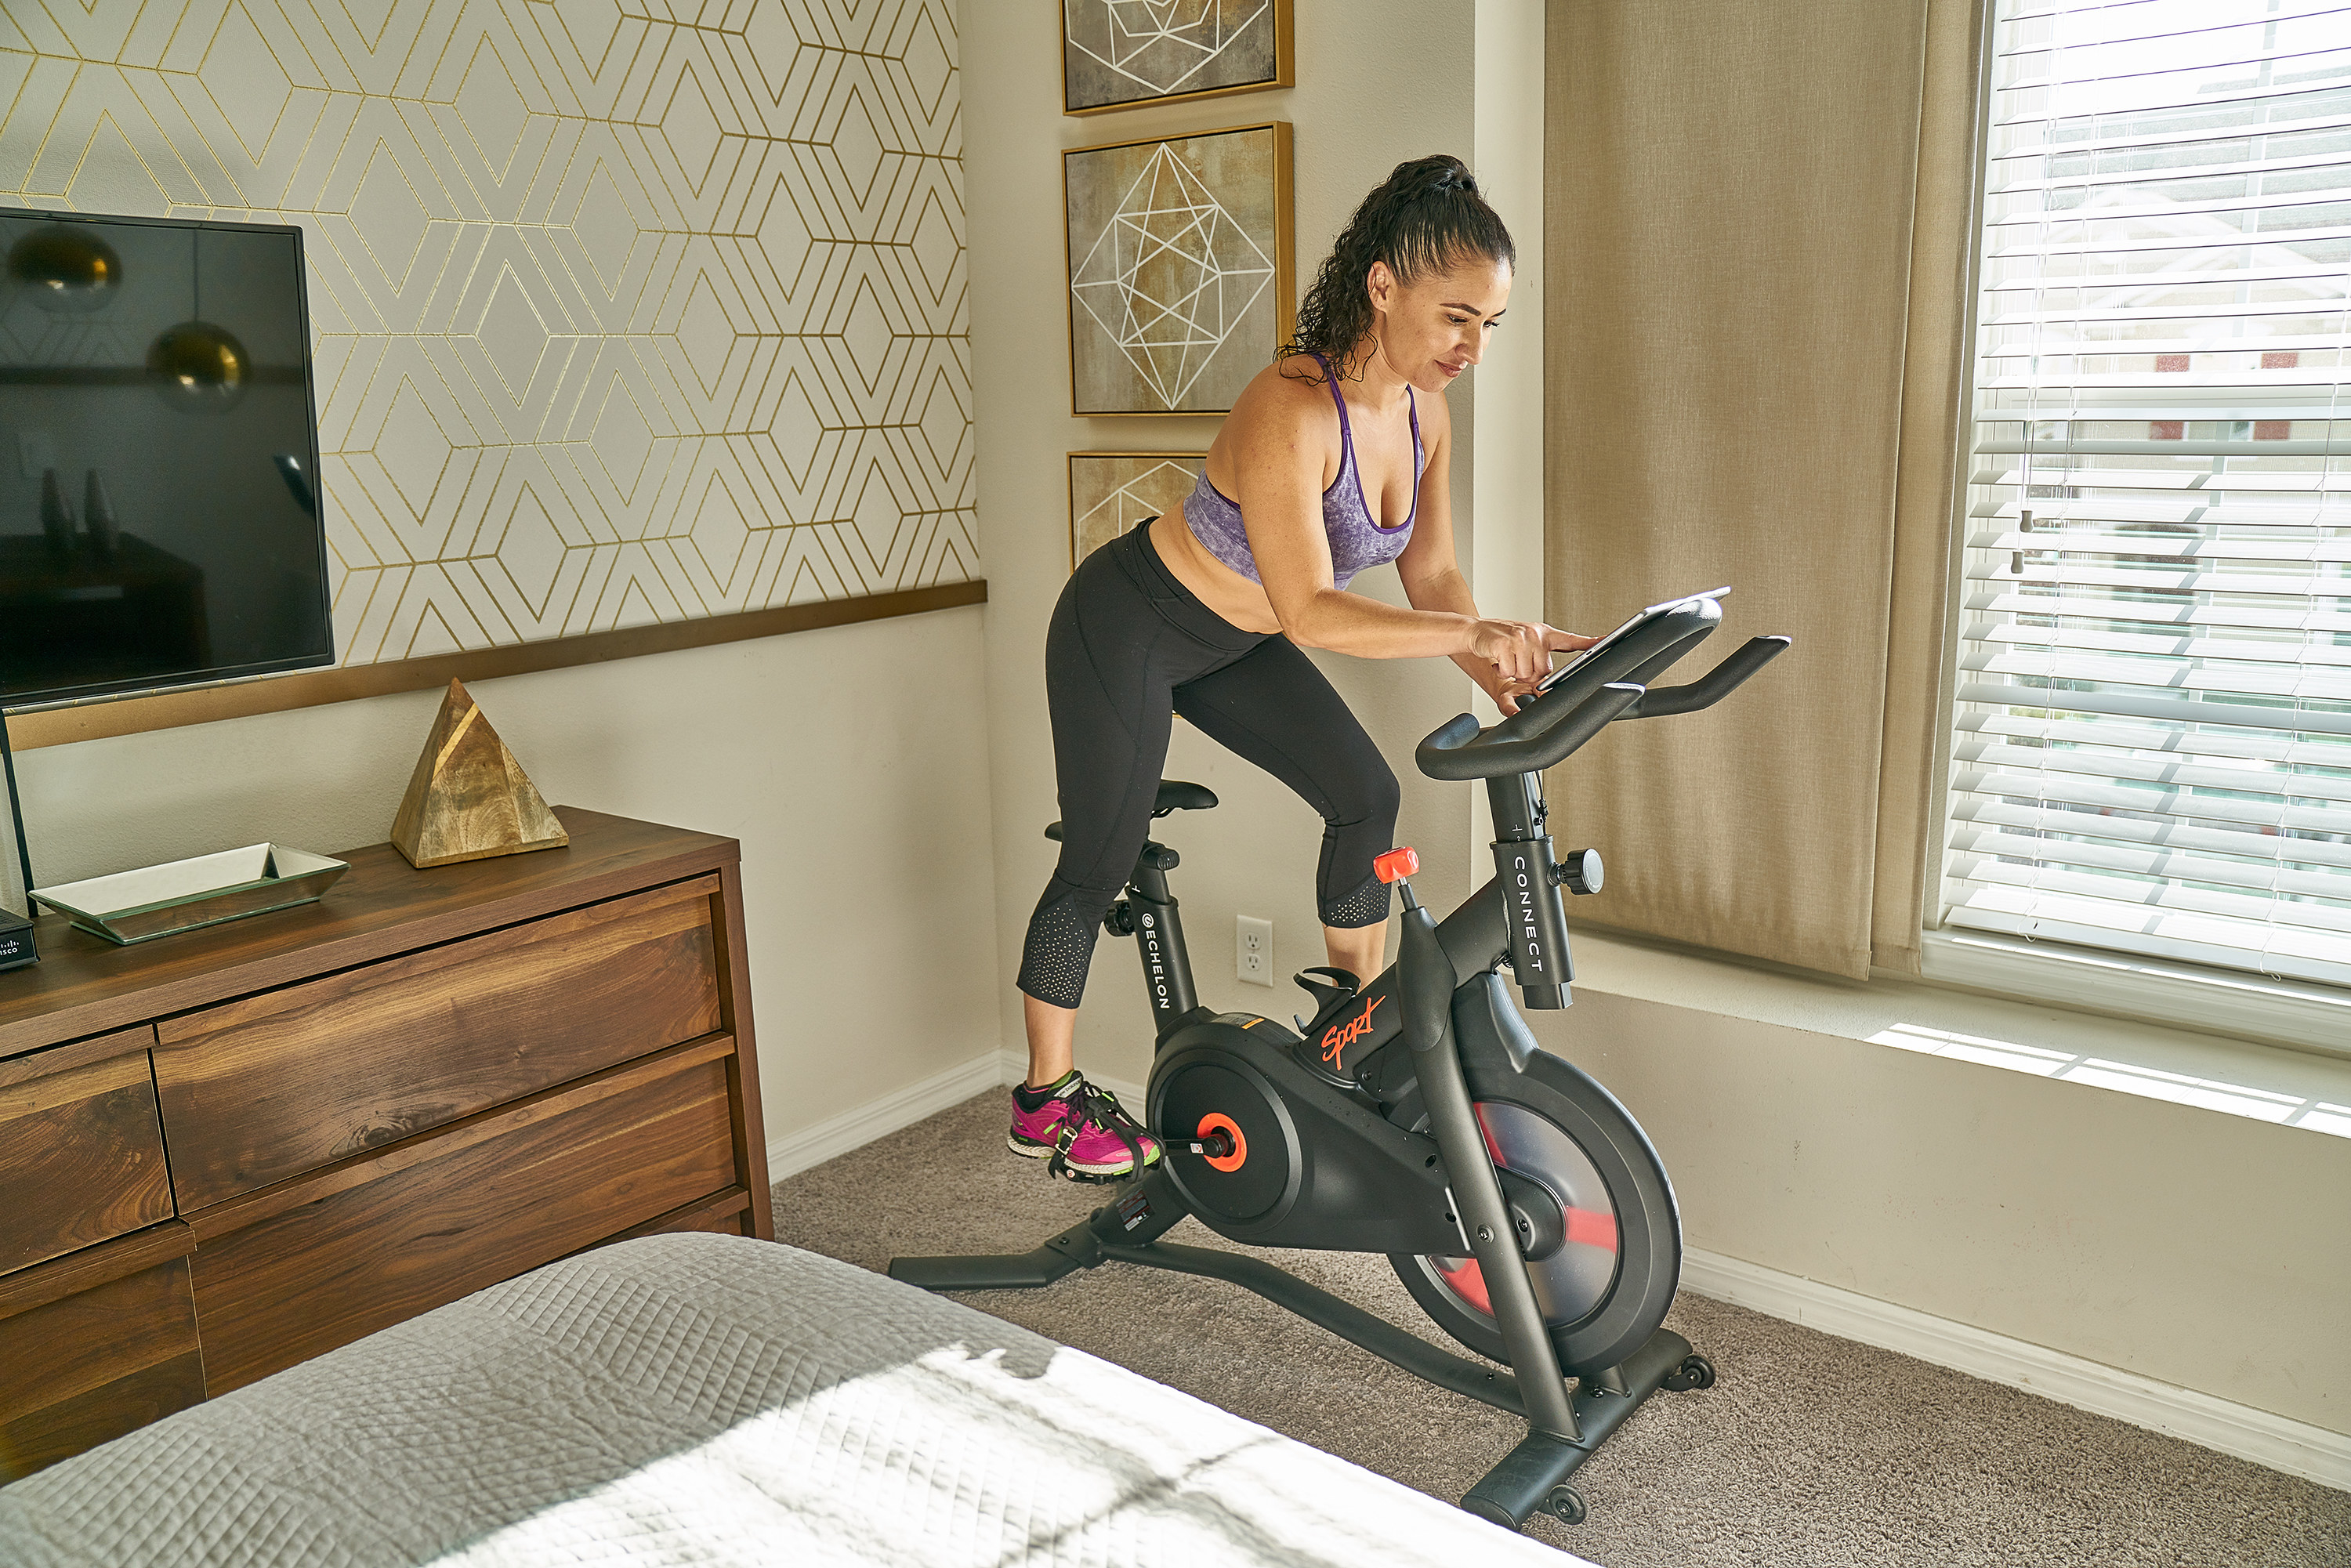 Model using the stationary bike